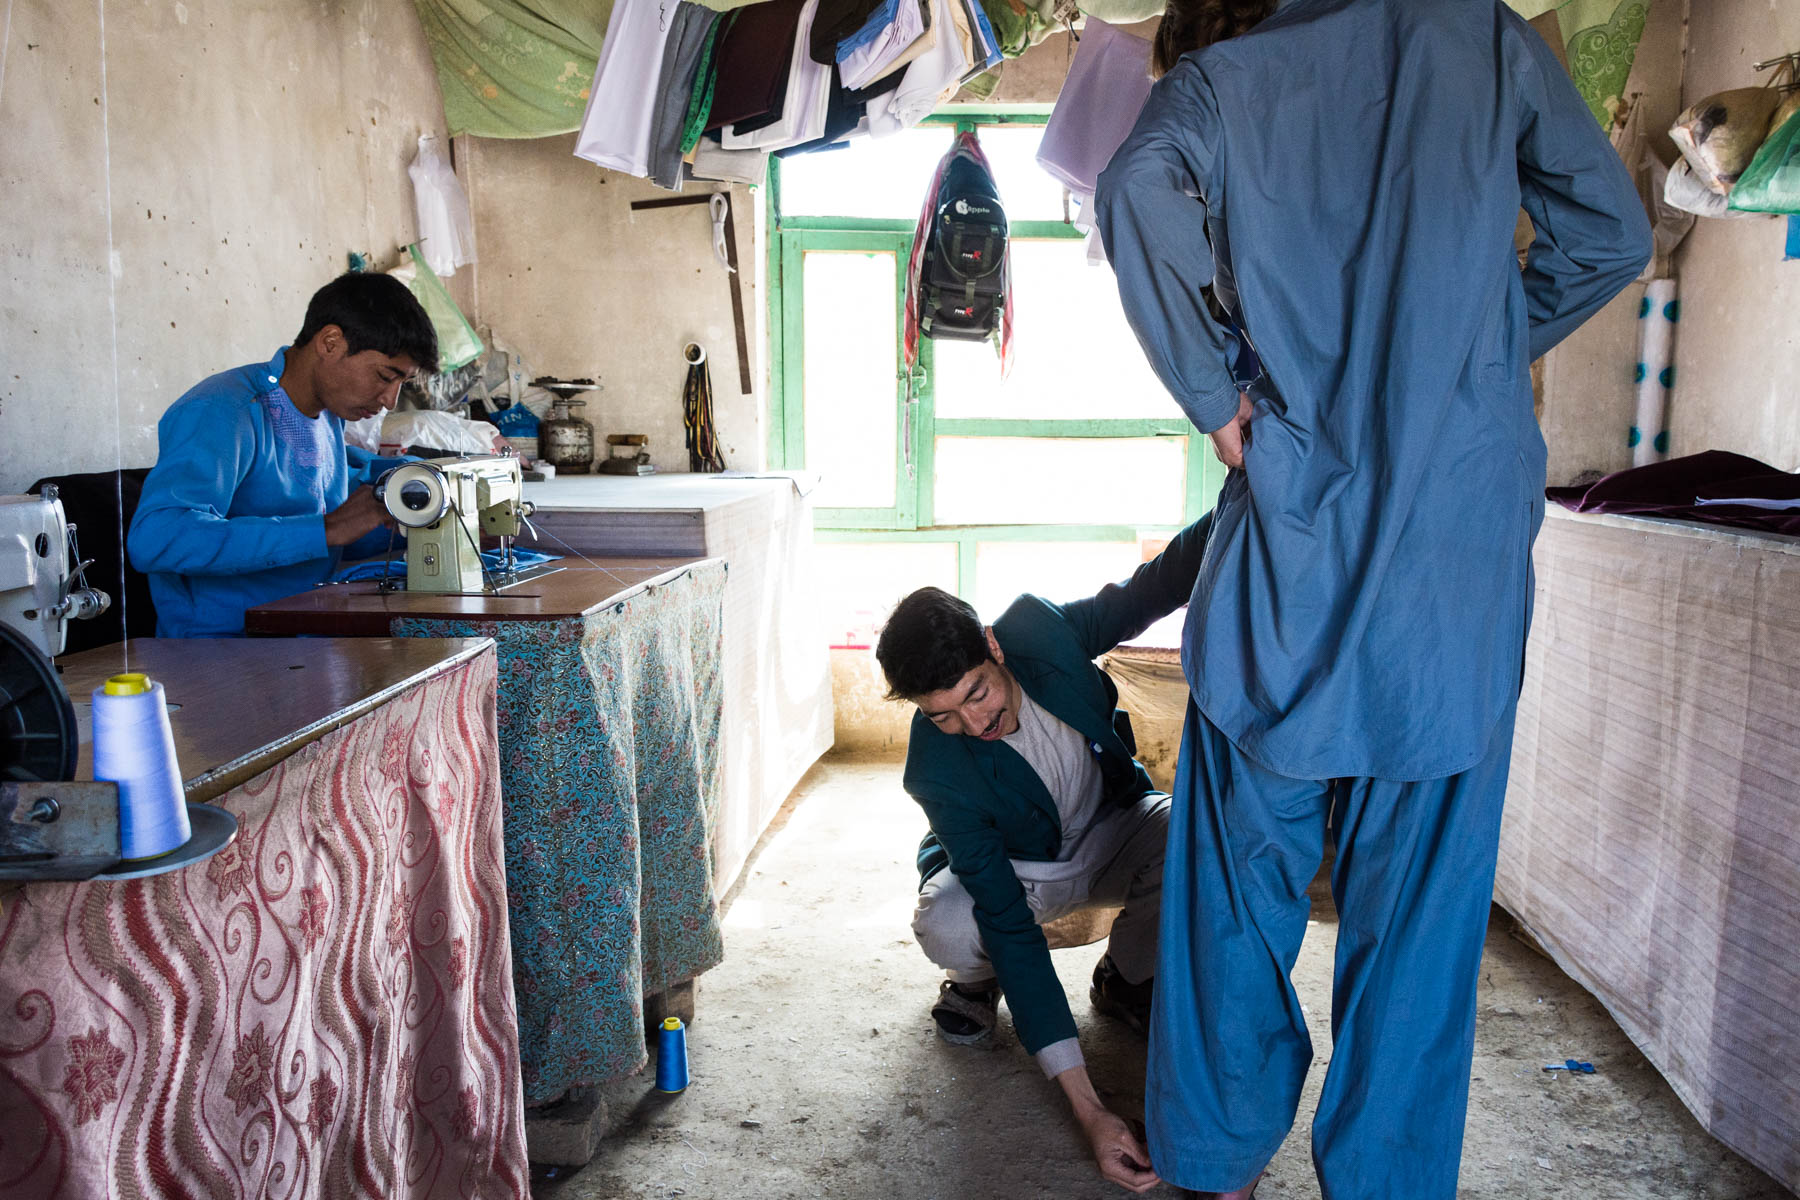 Getting measured for a new shalwar kameez by a tailor in Bamiyan, Afghanistan